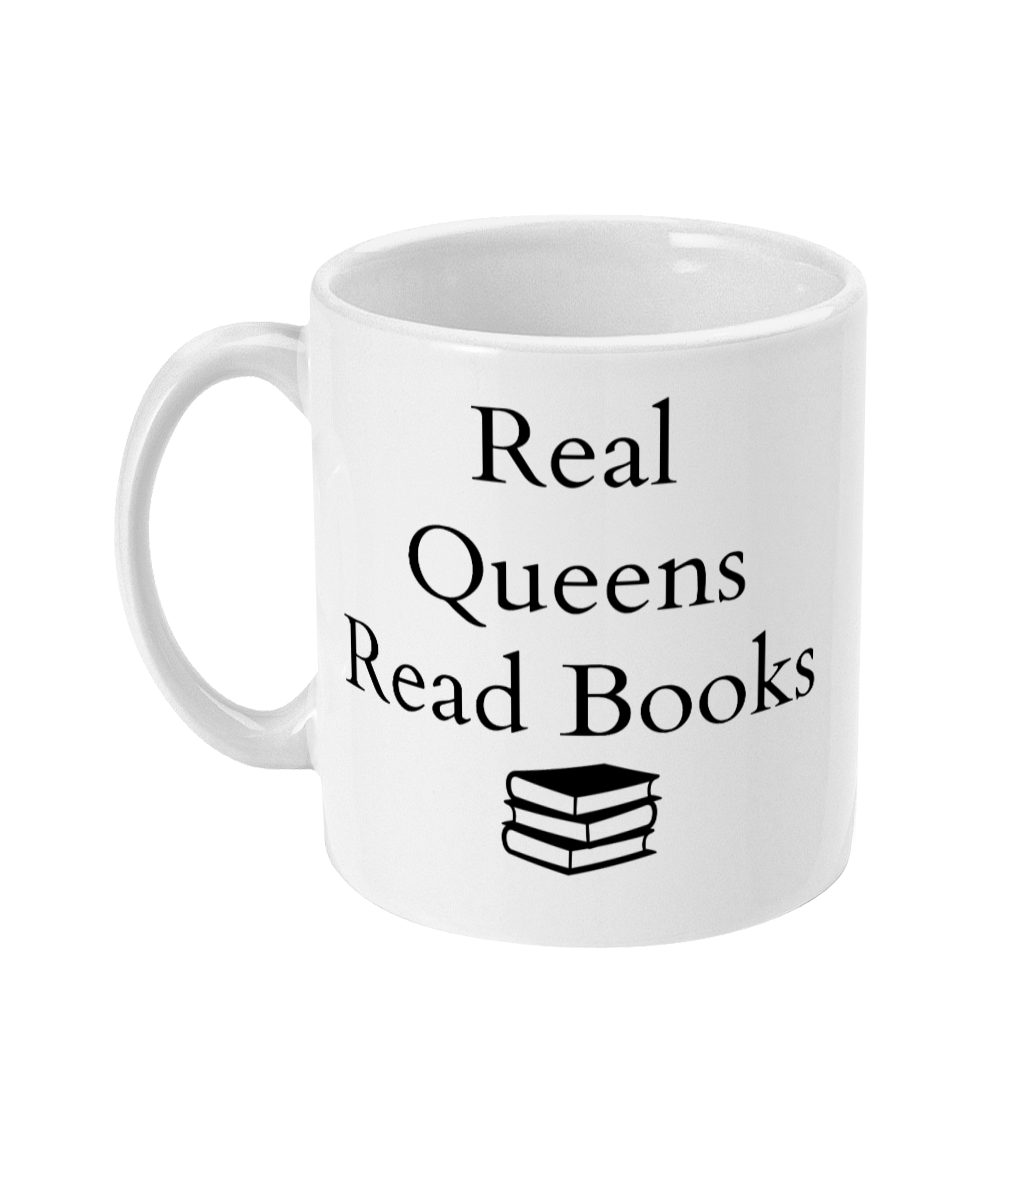 Real Queens Read Books Mug